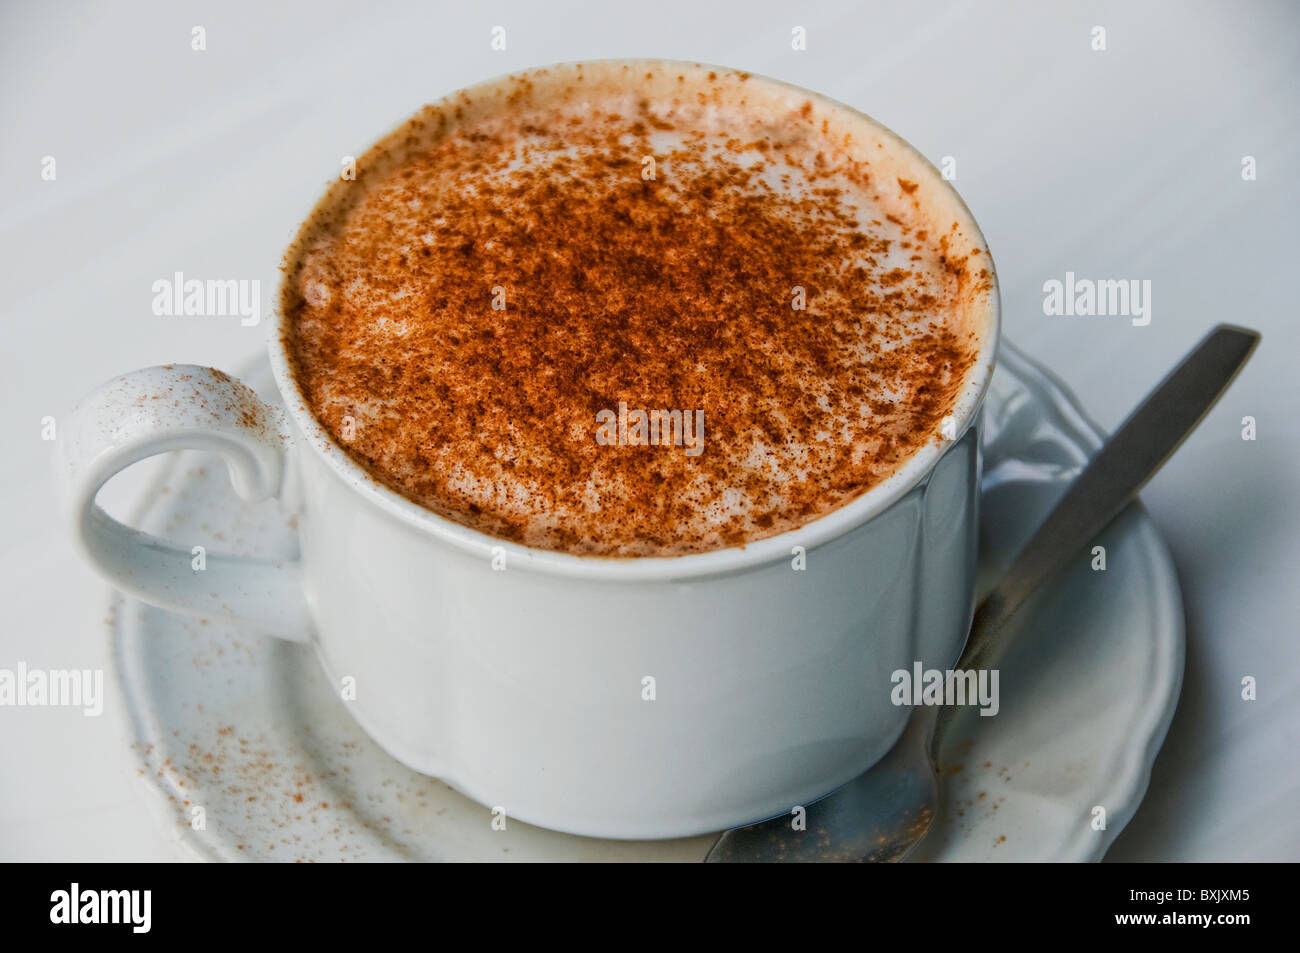 Café latte in cup on restaurant table Stock Photo